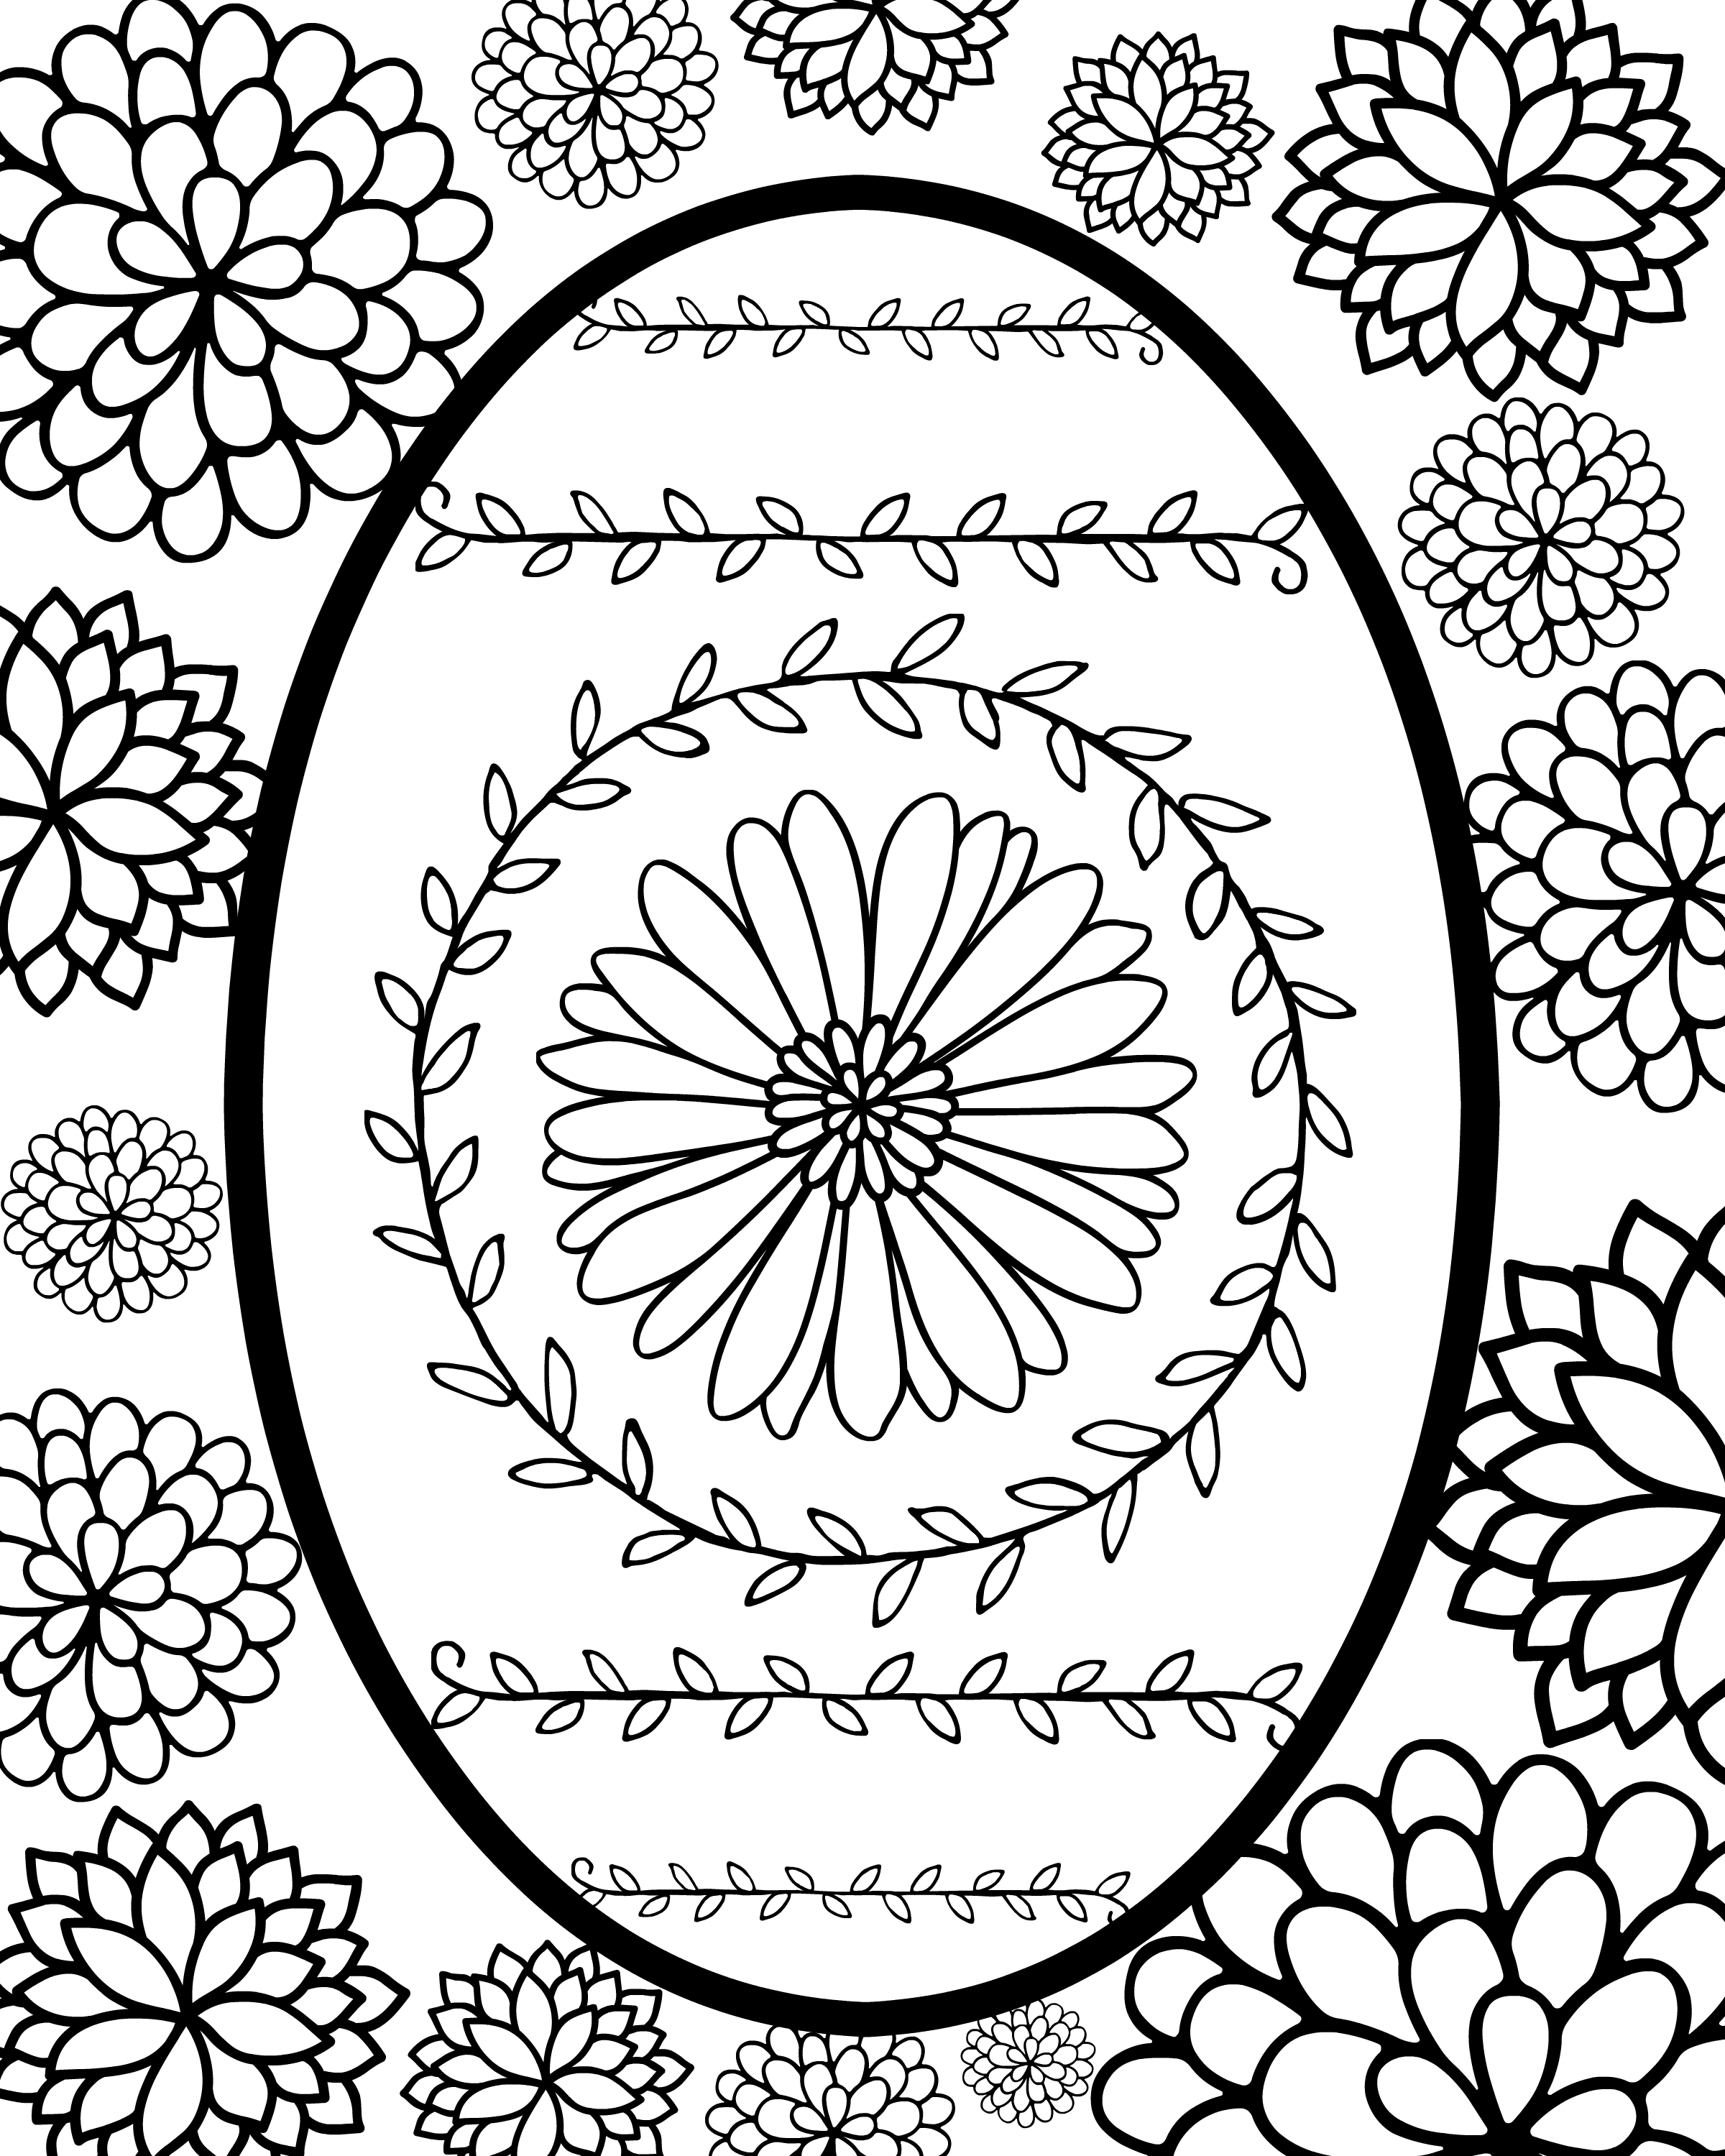 printable easter egg coloring pages faberge egg style easter egg printable coloring page printable egg coloring easter pages